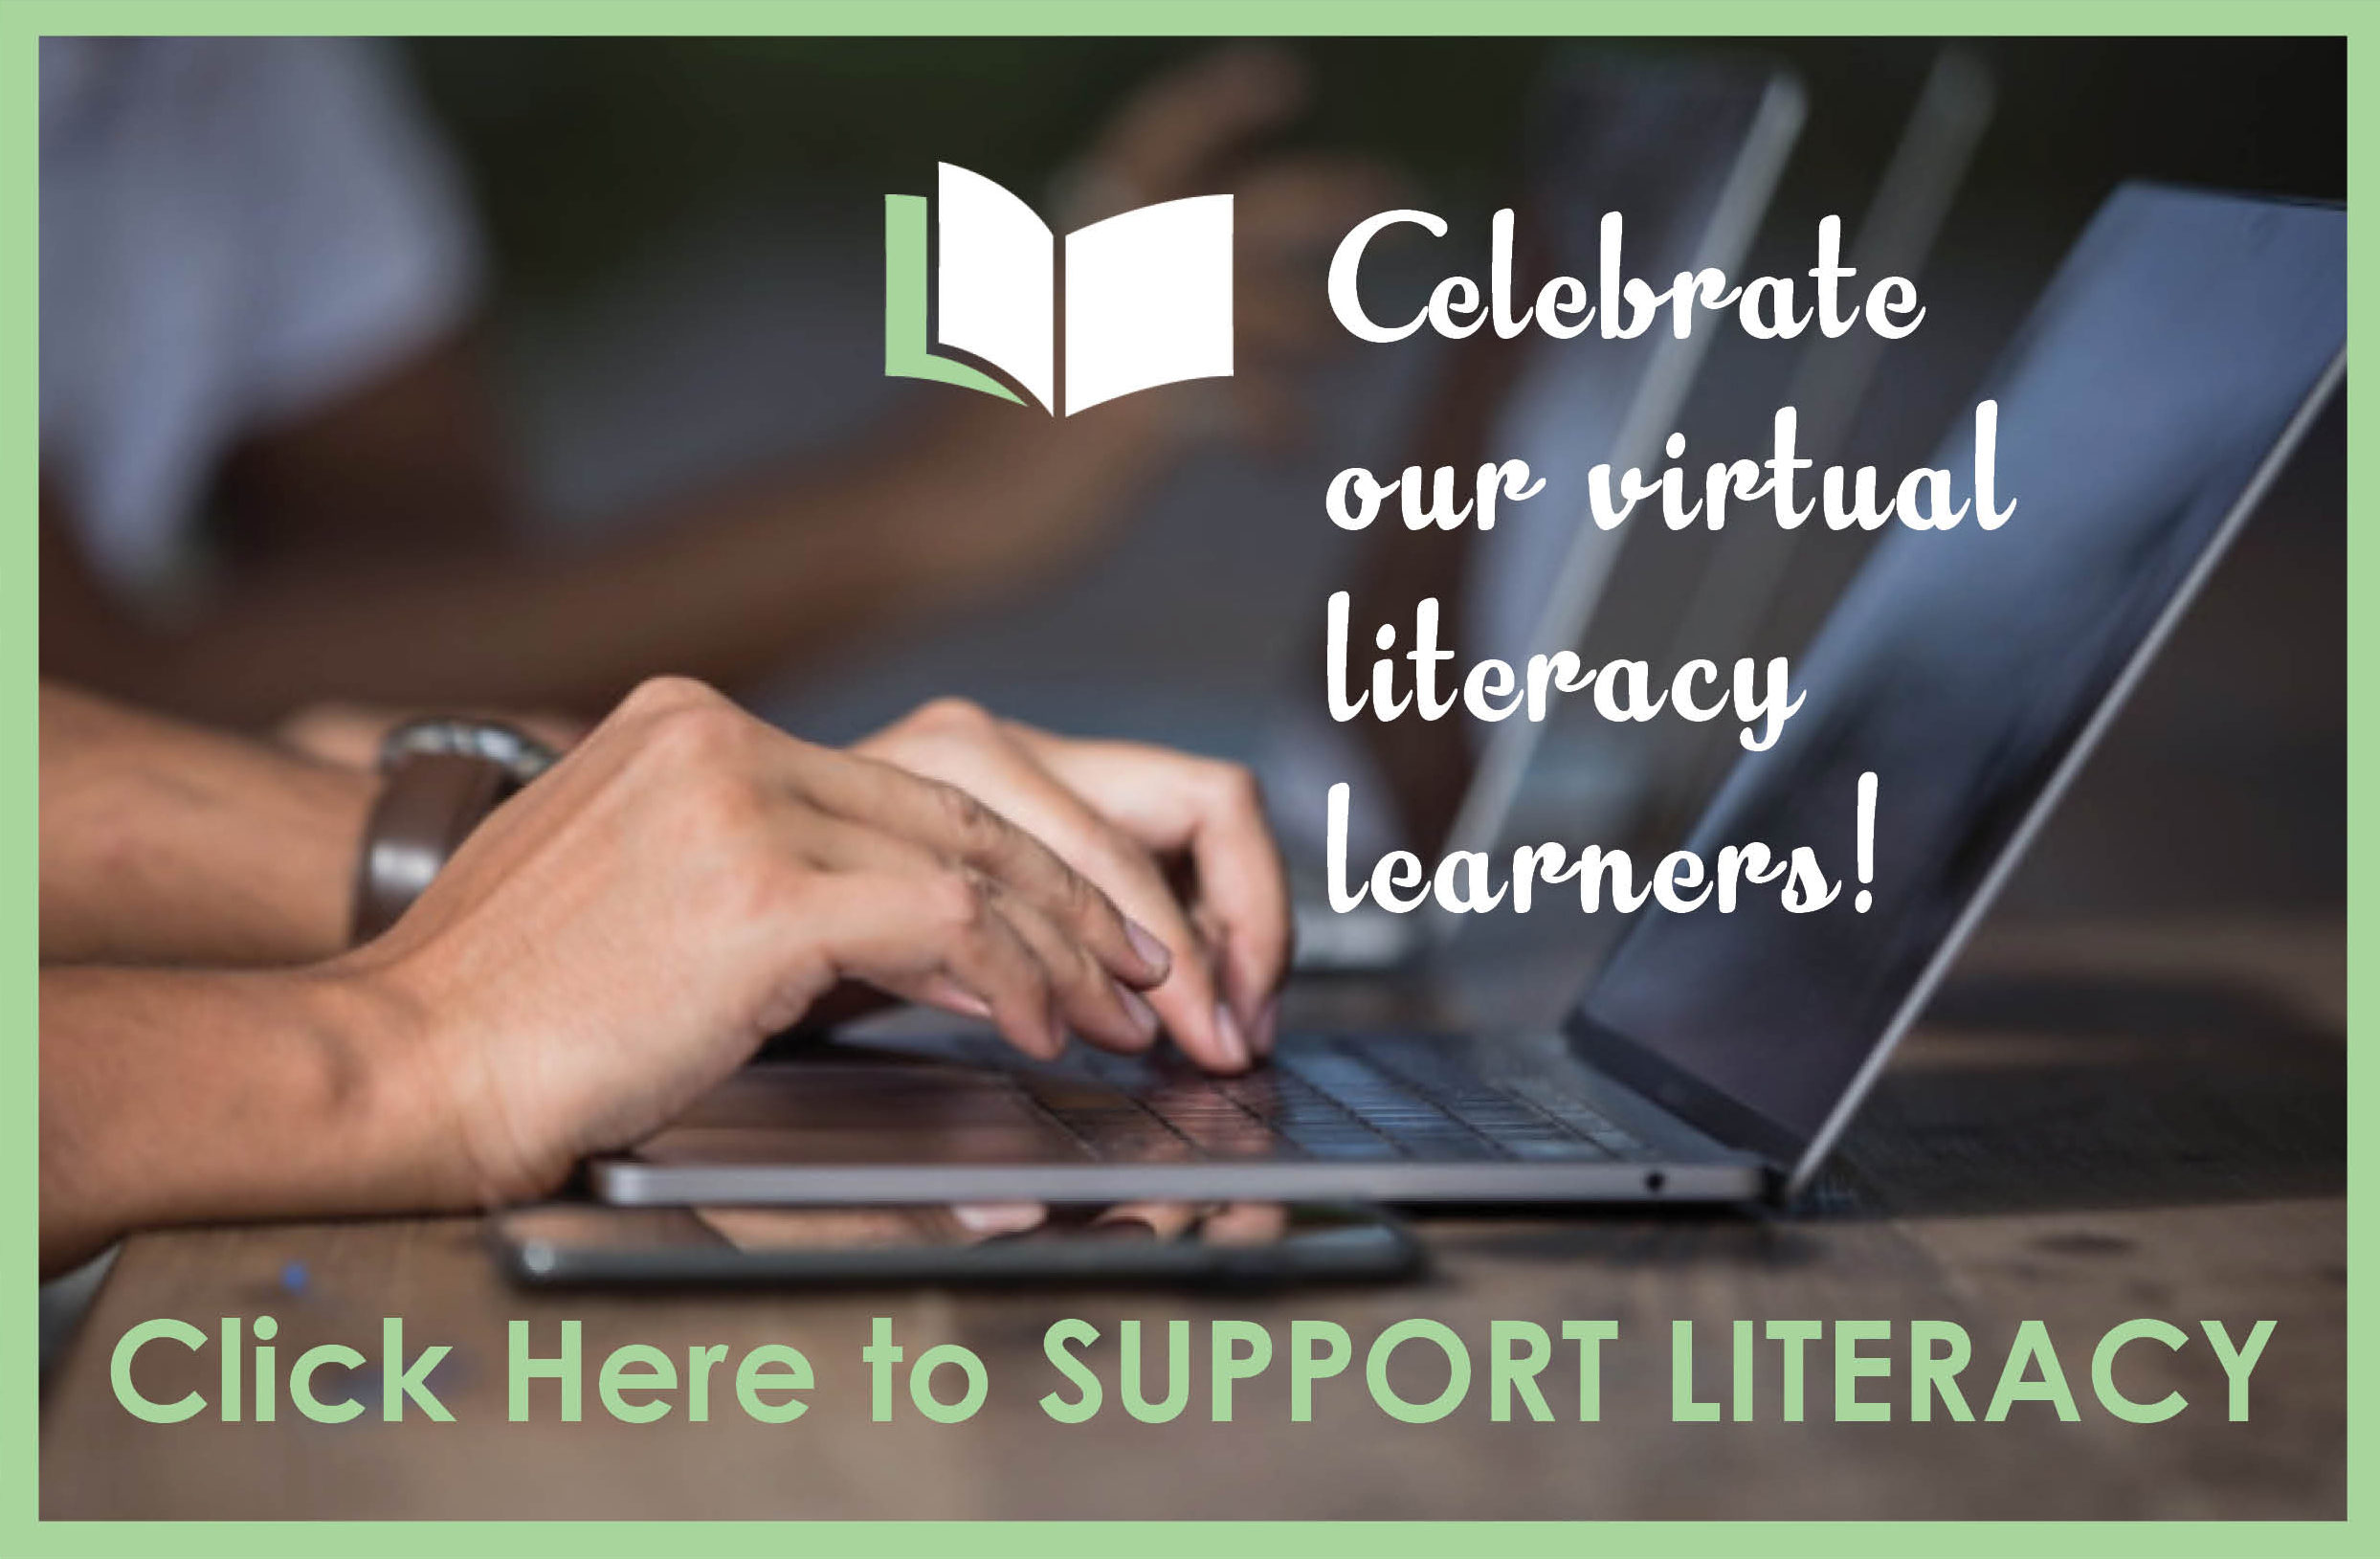 SupportLiteracy